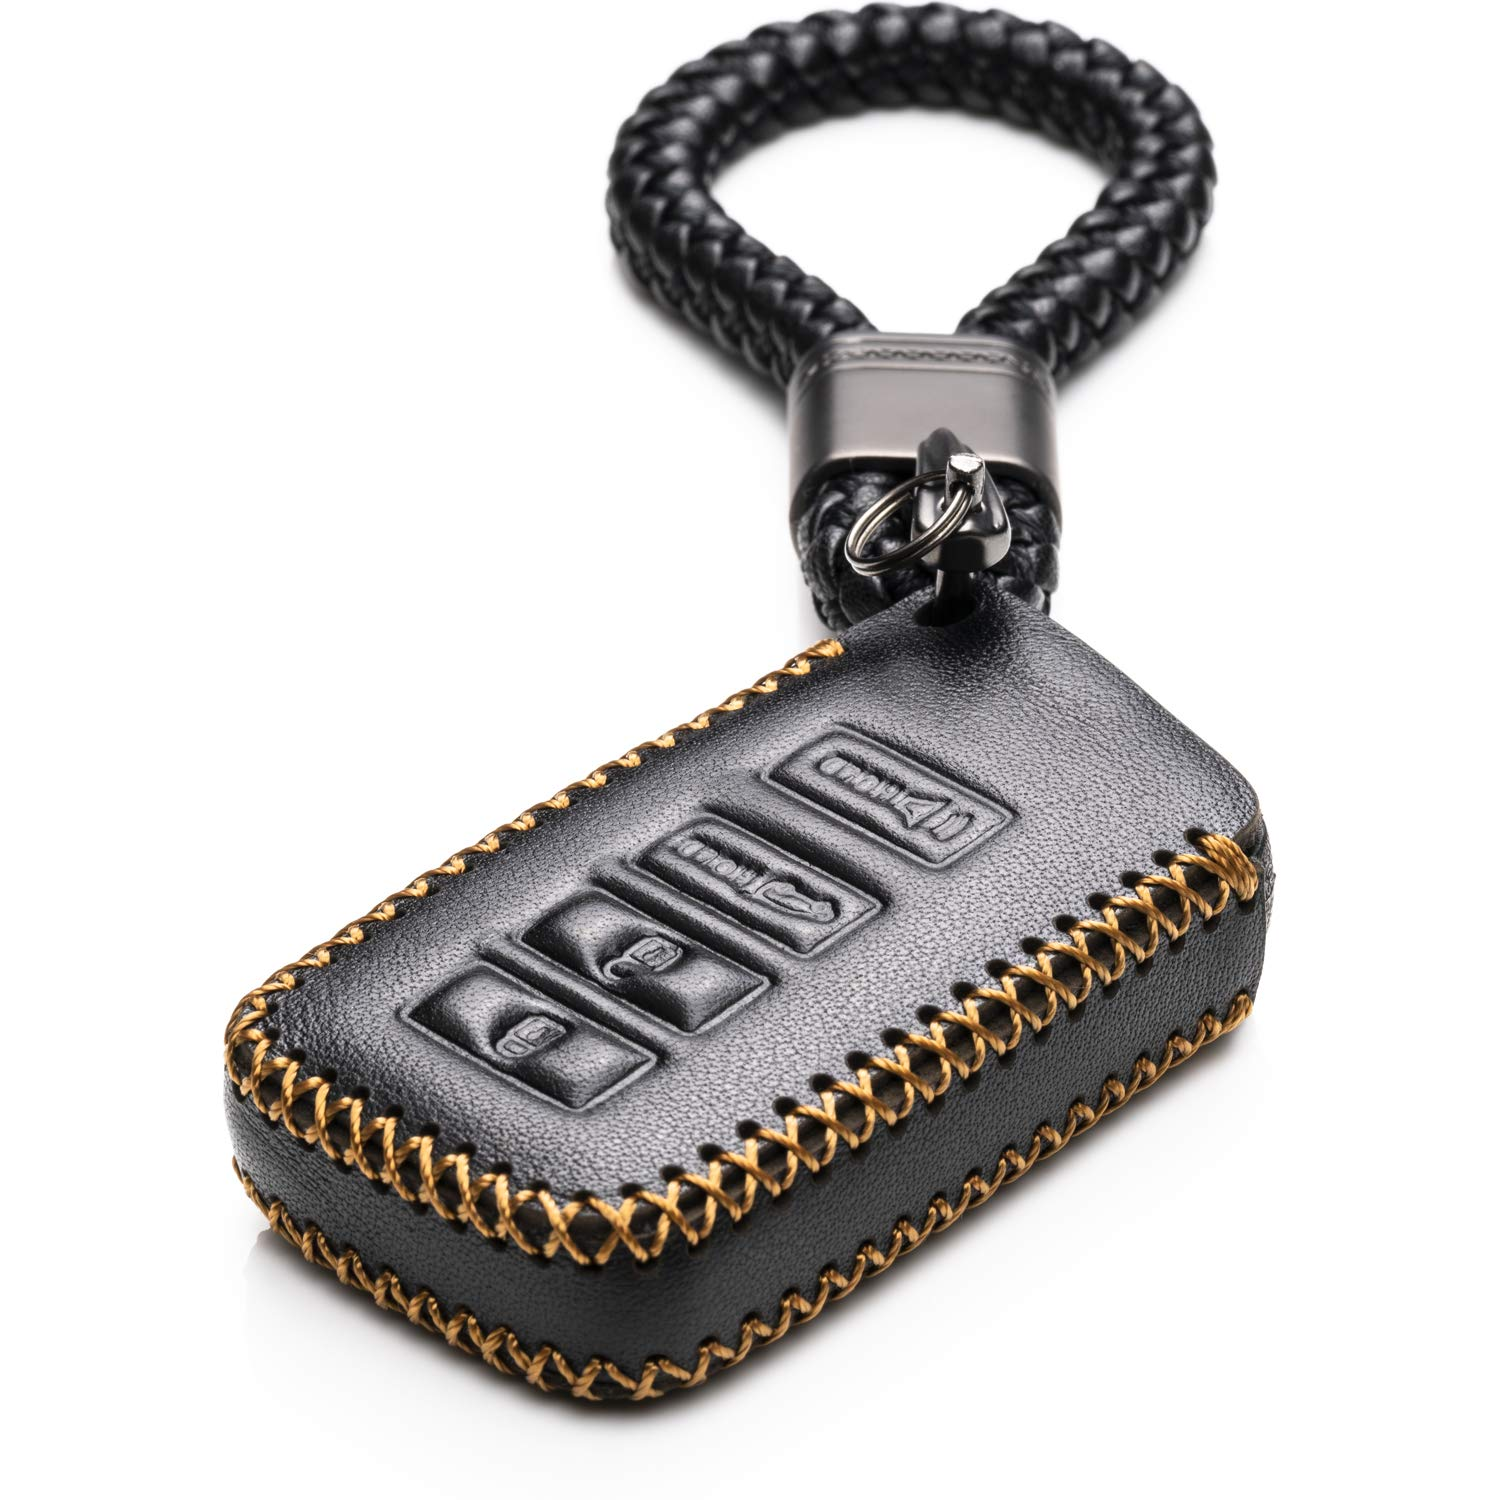 Black Vitodeco 4 Buttons Leather Keyless Entry Remote Control Smart Key Case Cover with a Key Chain for Lexus